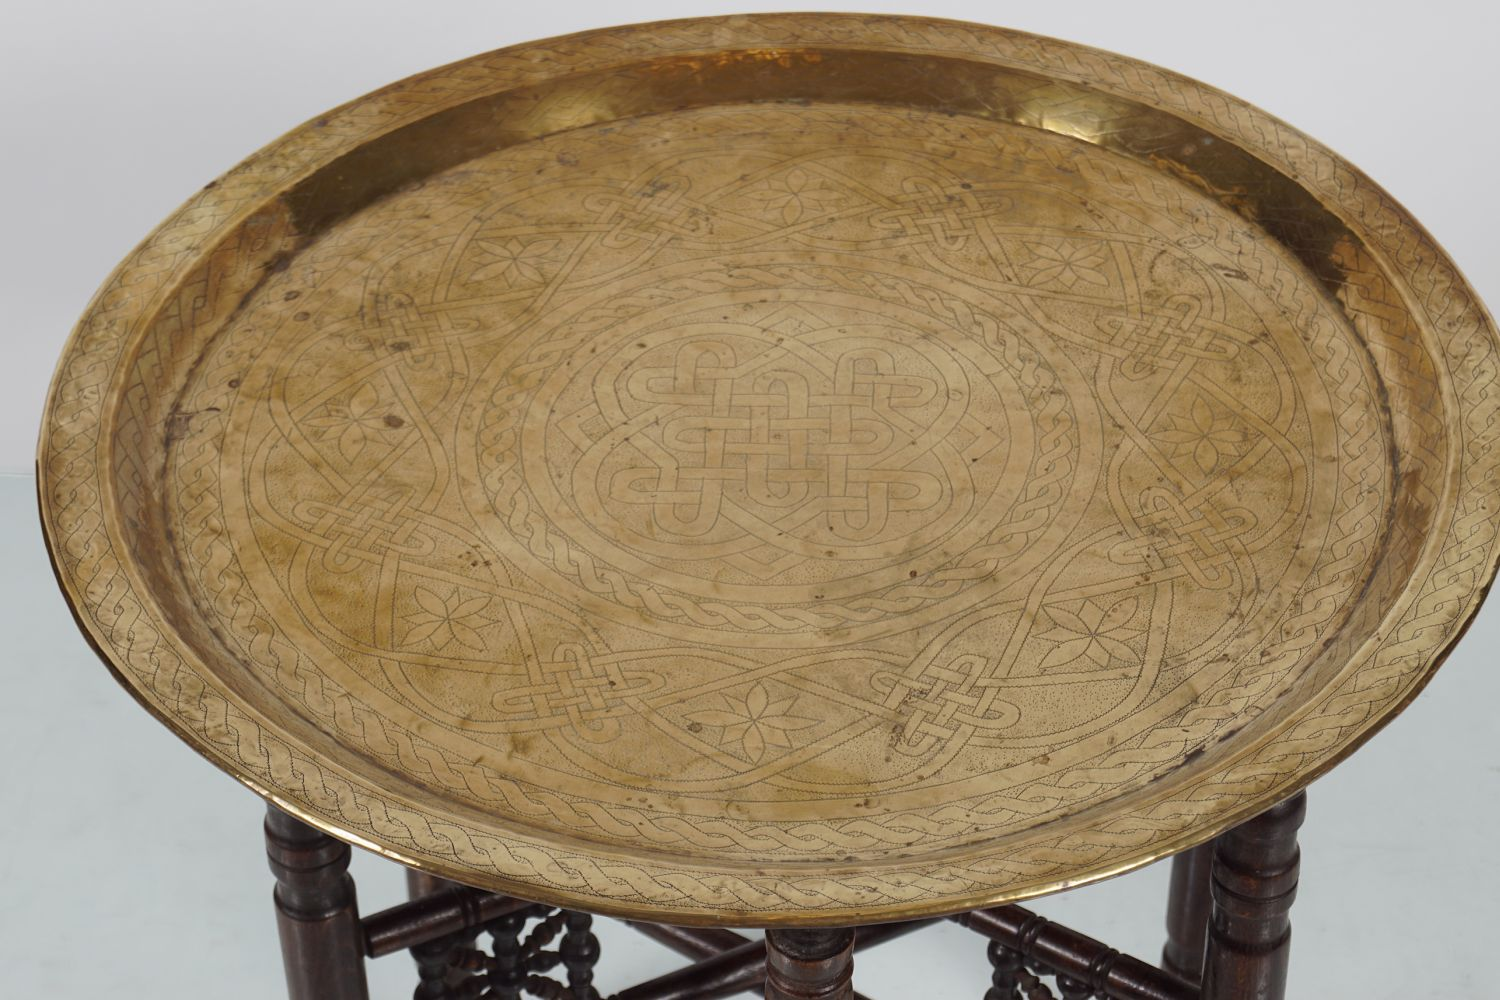 19TH-CENTURY INDIAN BRASS TRAY - Image 3 of 4